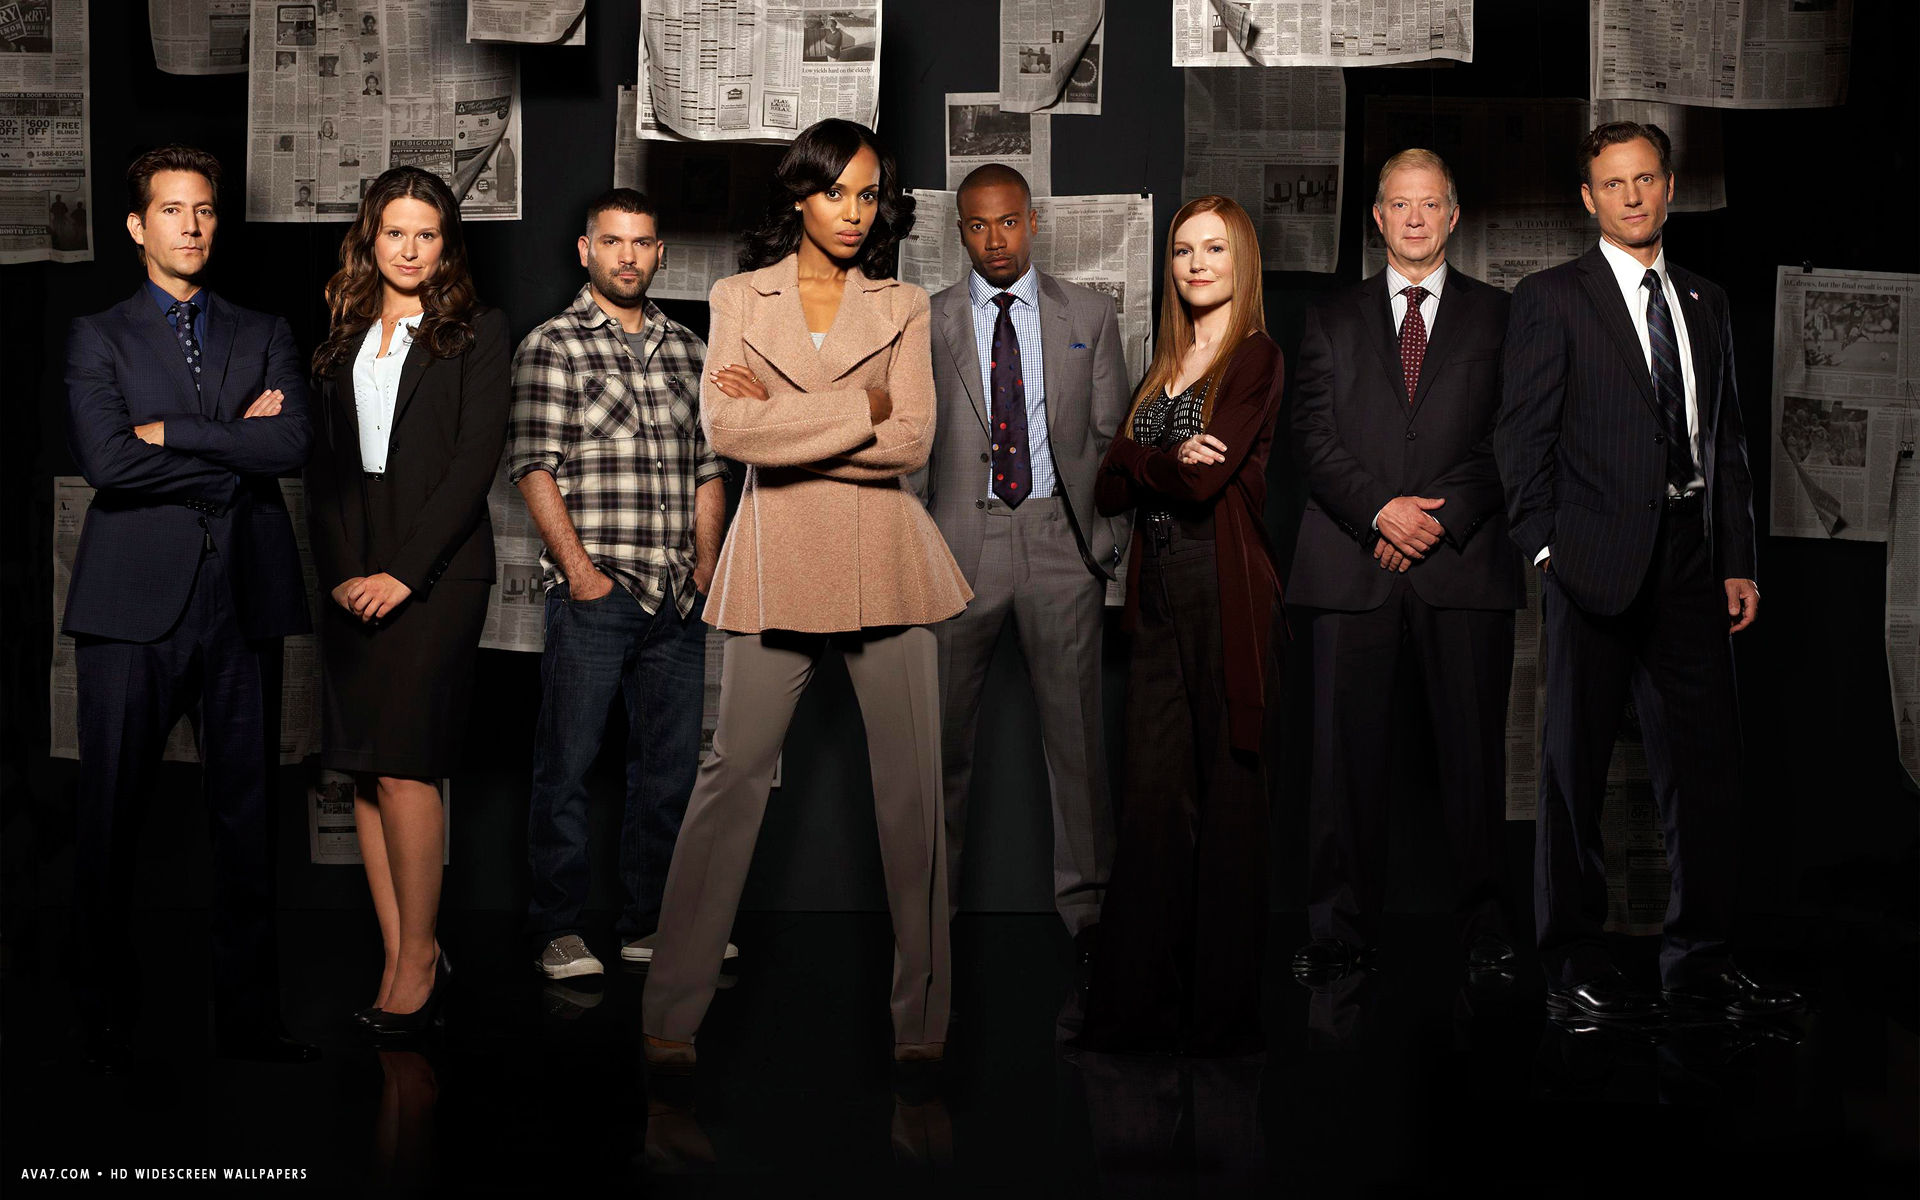 scandal tv series show hd widescreen wallpaper